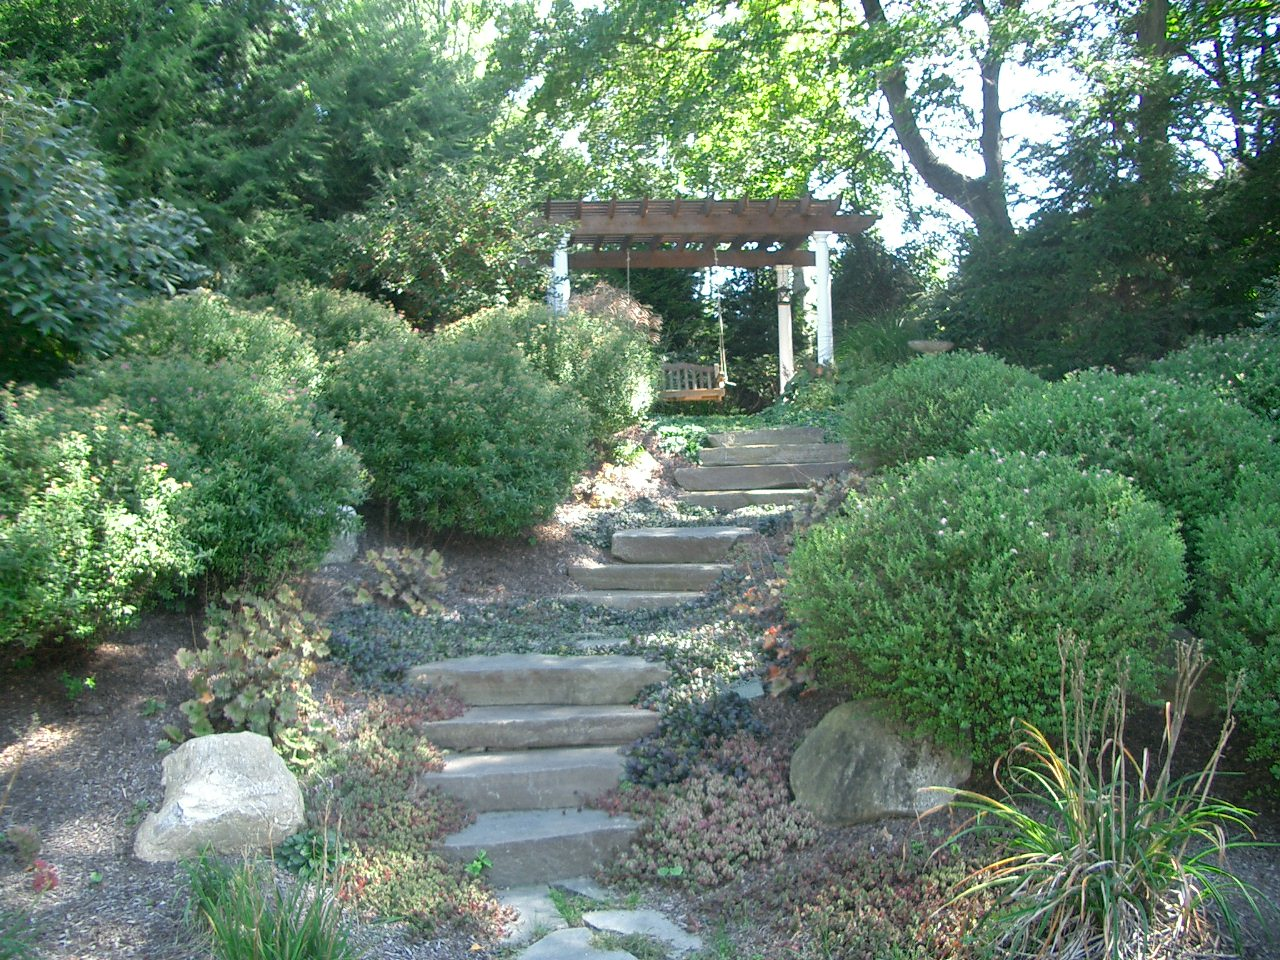 Garden Steps and Landscape Architecture